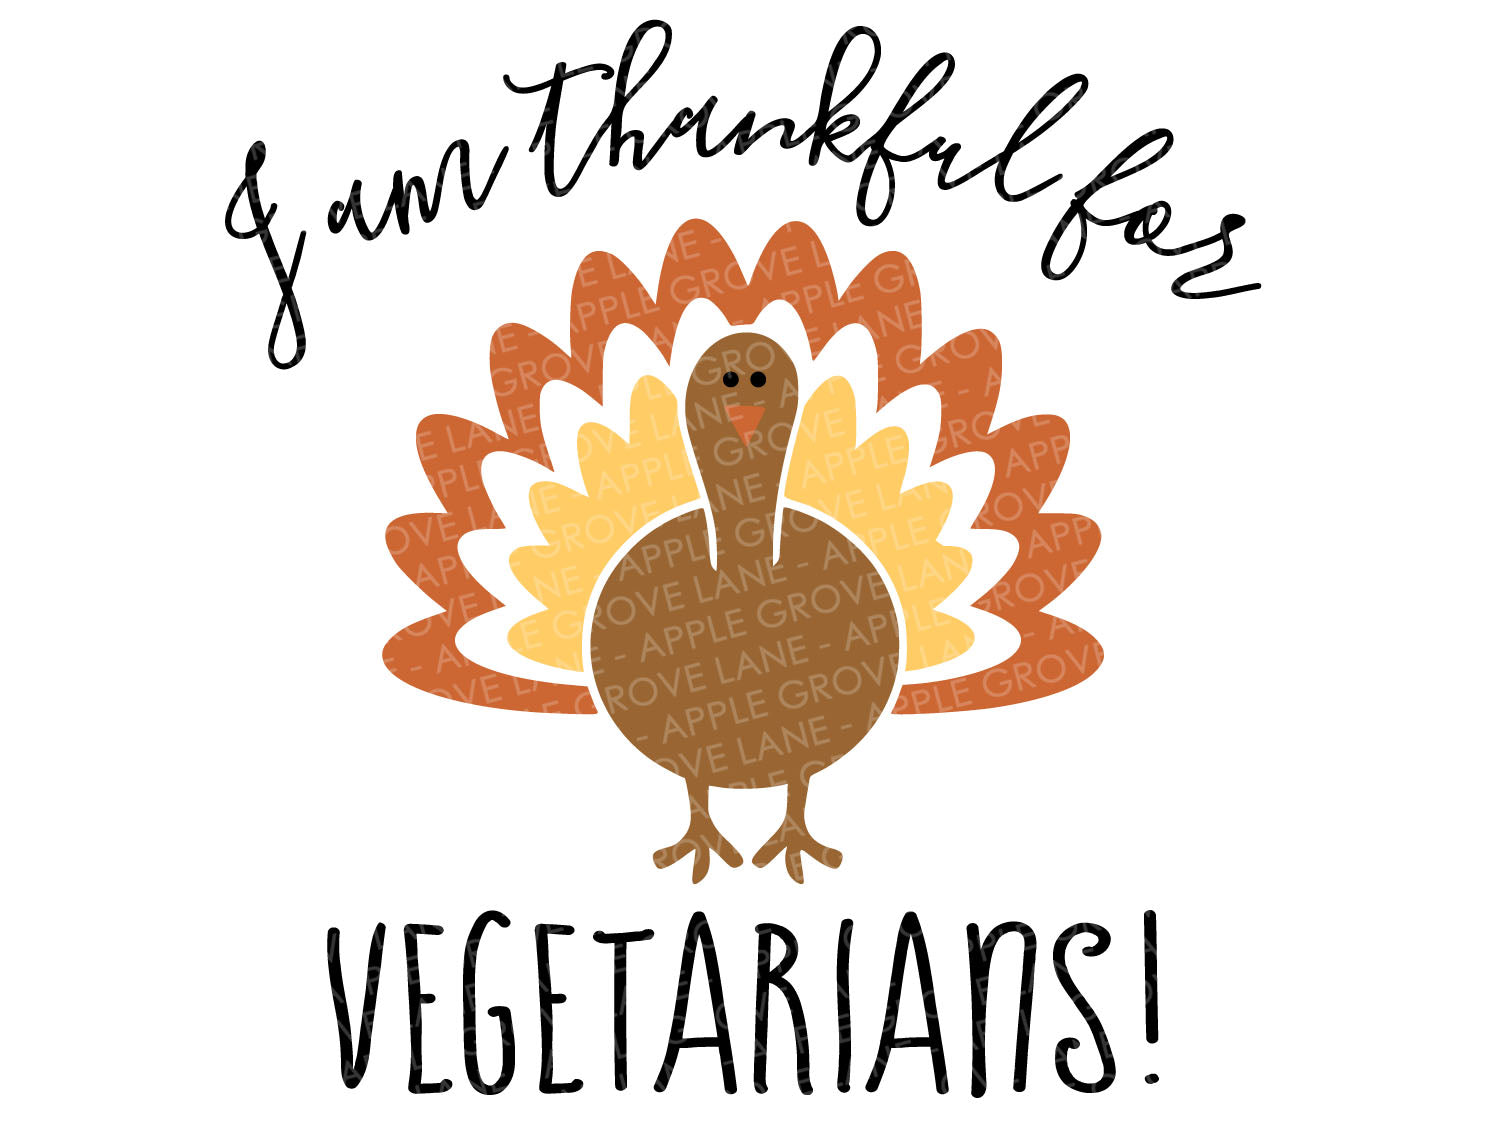 Thankful for Vegetarians Svg - Thanksgiving Svg - Turkey Svg - Thankful Svg - Funny Thanksgiving Svg - Fall Svg - Svg Eps Png Dxf